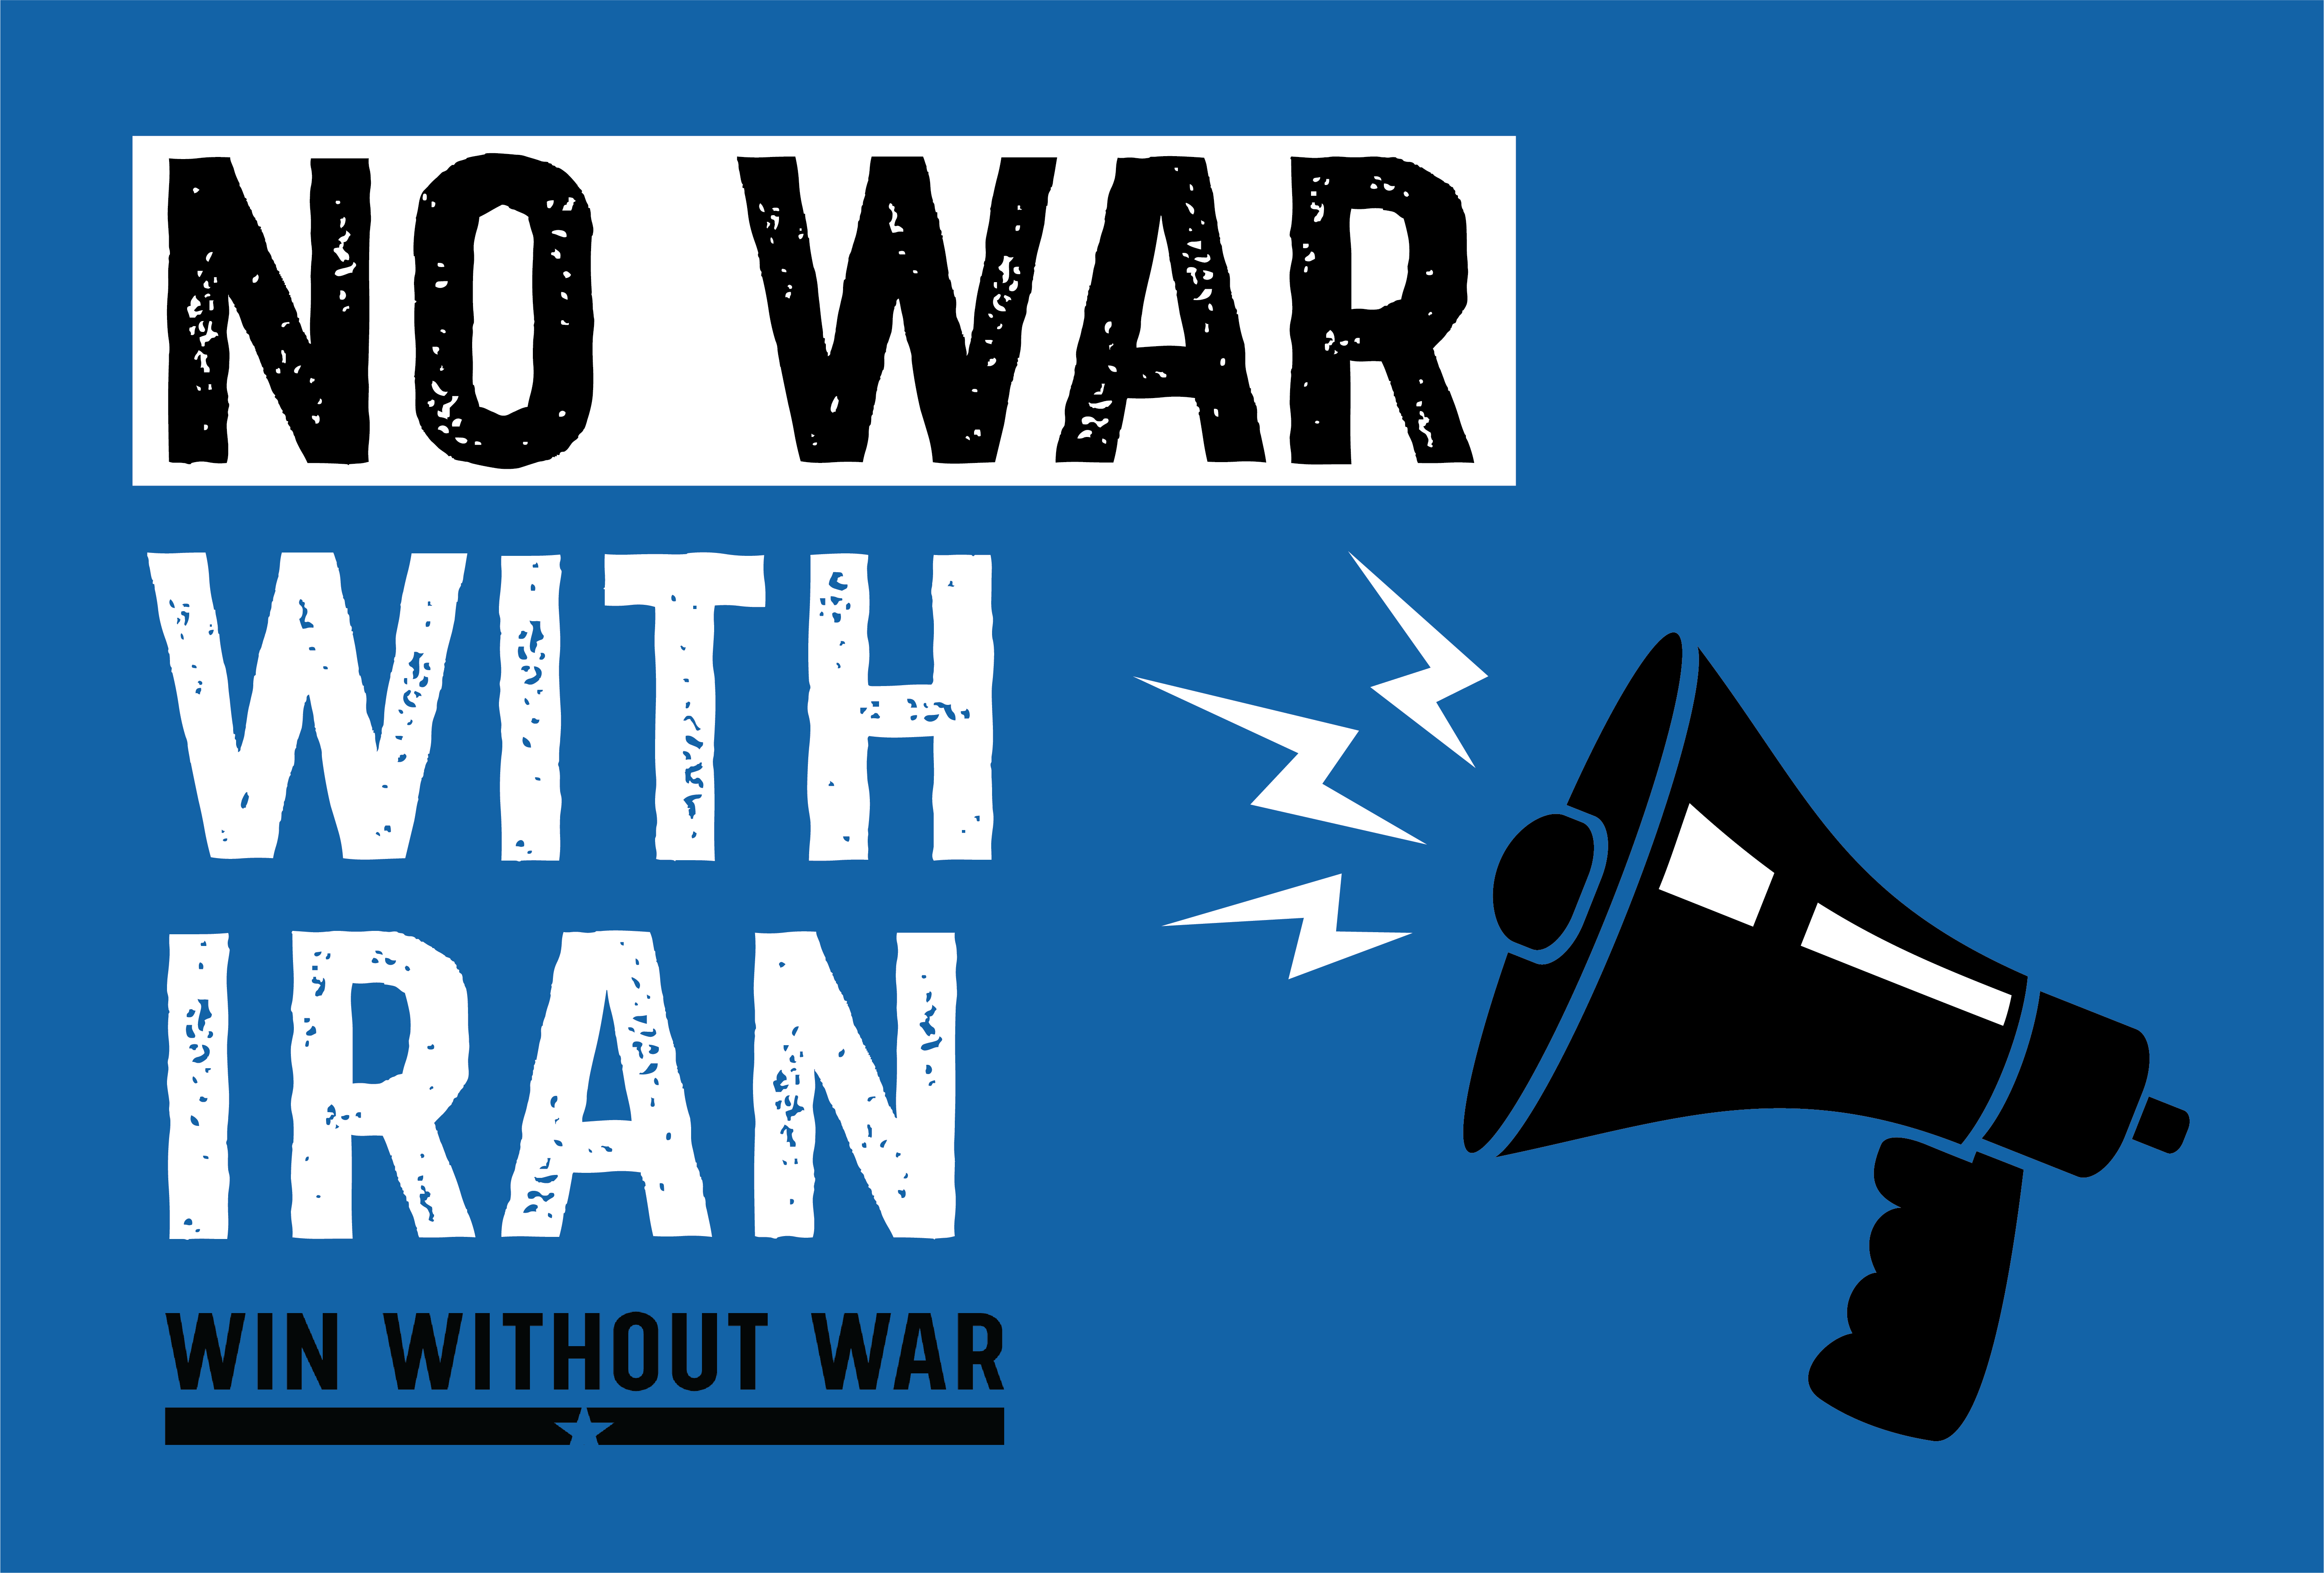 Congress MUST Stop War with Iran